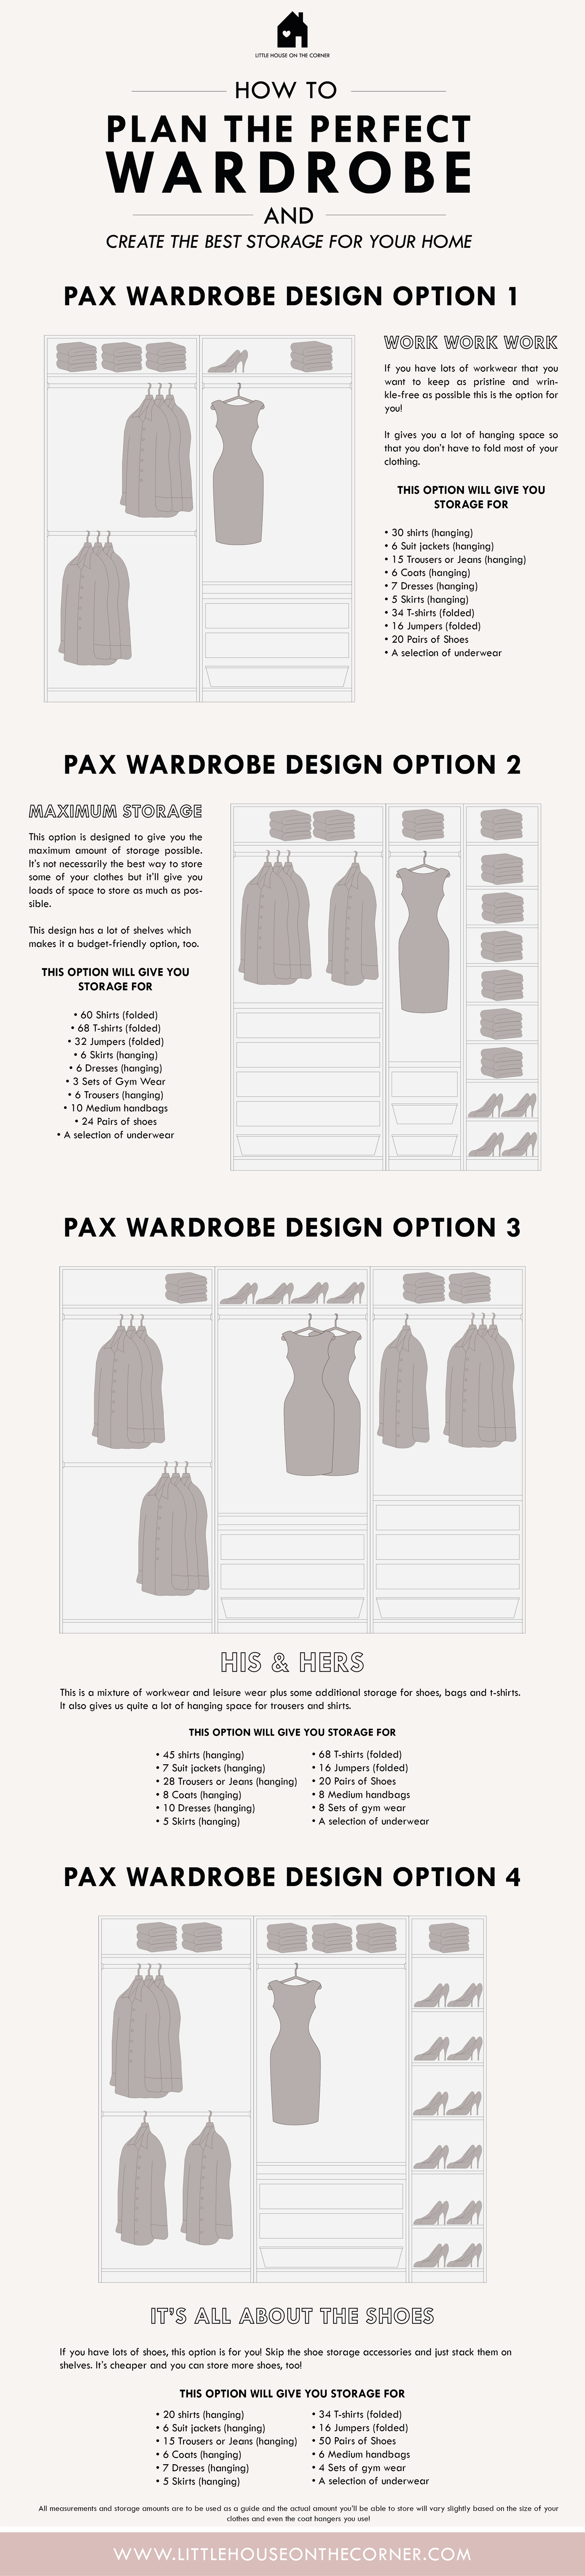 How To Plan The Perfect Pax Wardrobe